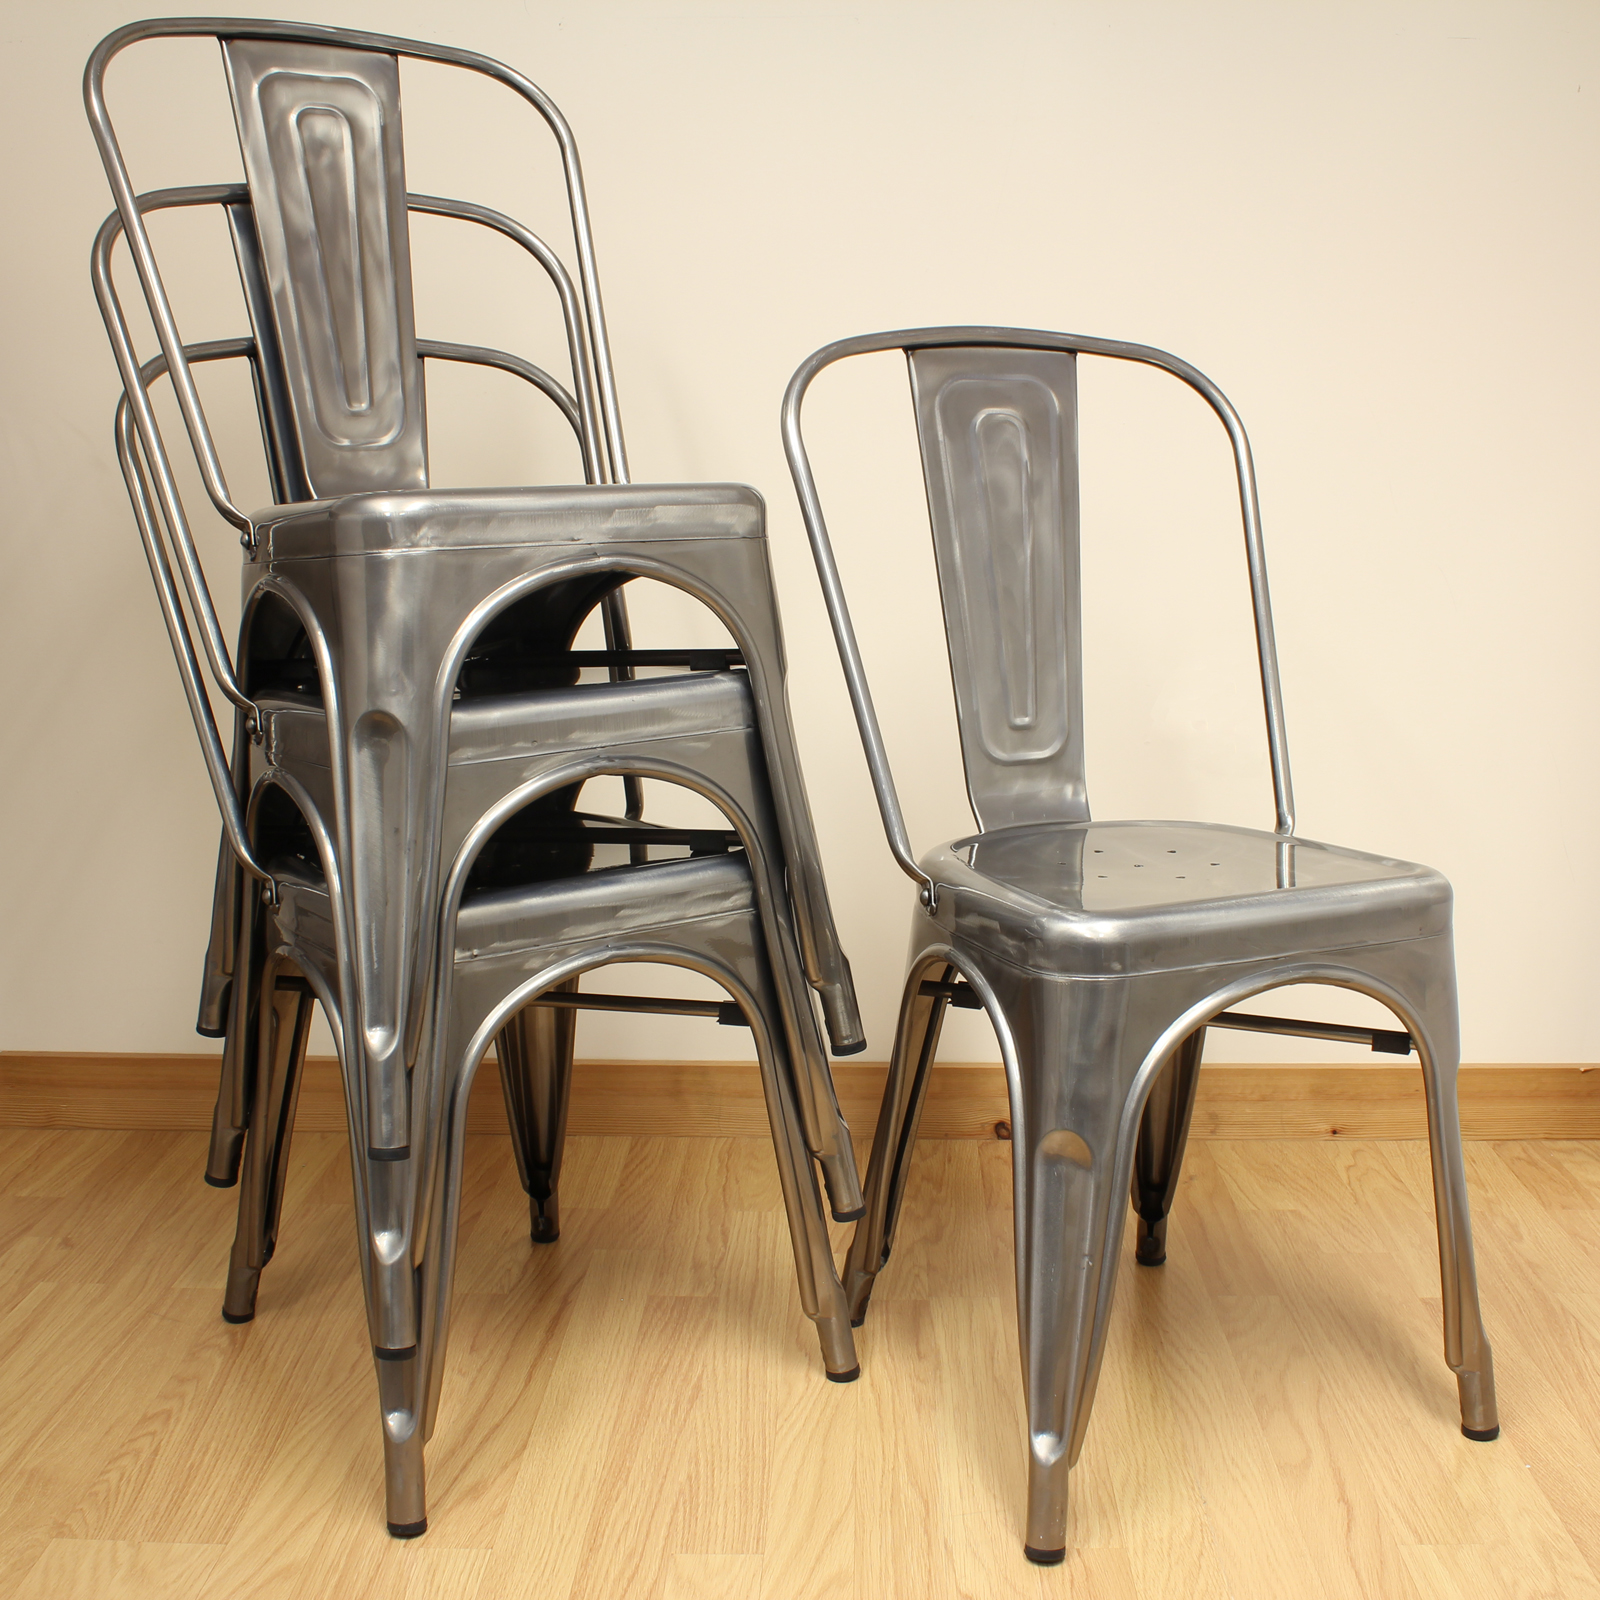 metal kitchen chair wishbone chairs set of 4 gunmetal industrial dining